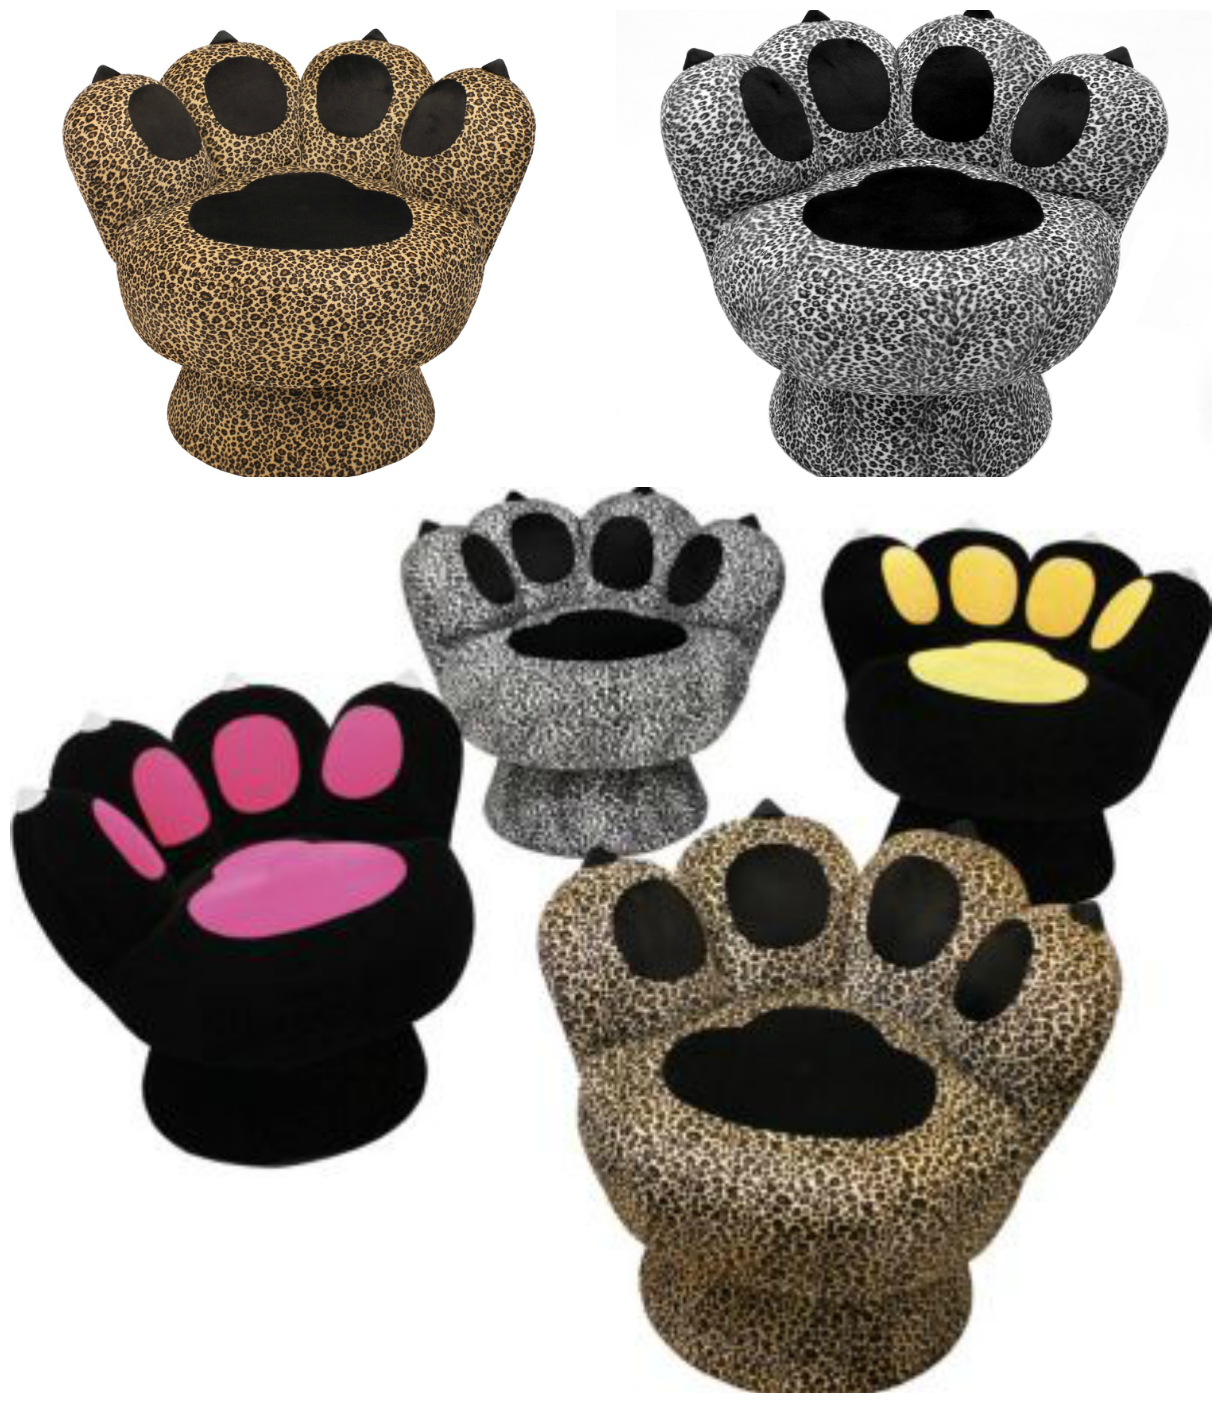 Paw Shaped Chair Designs